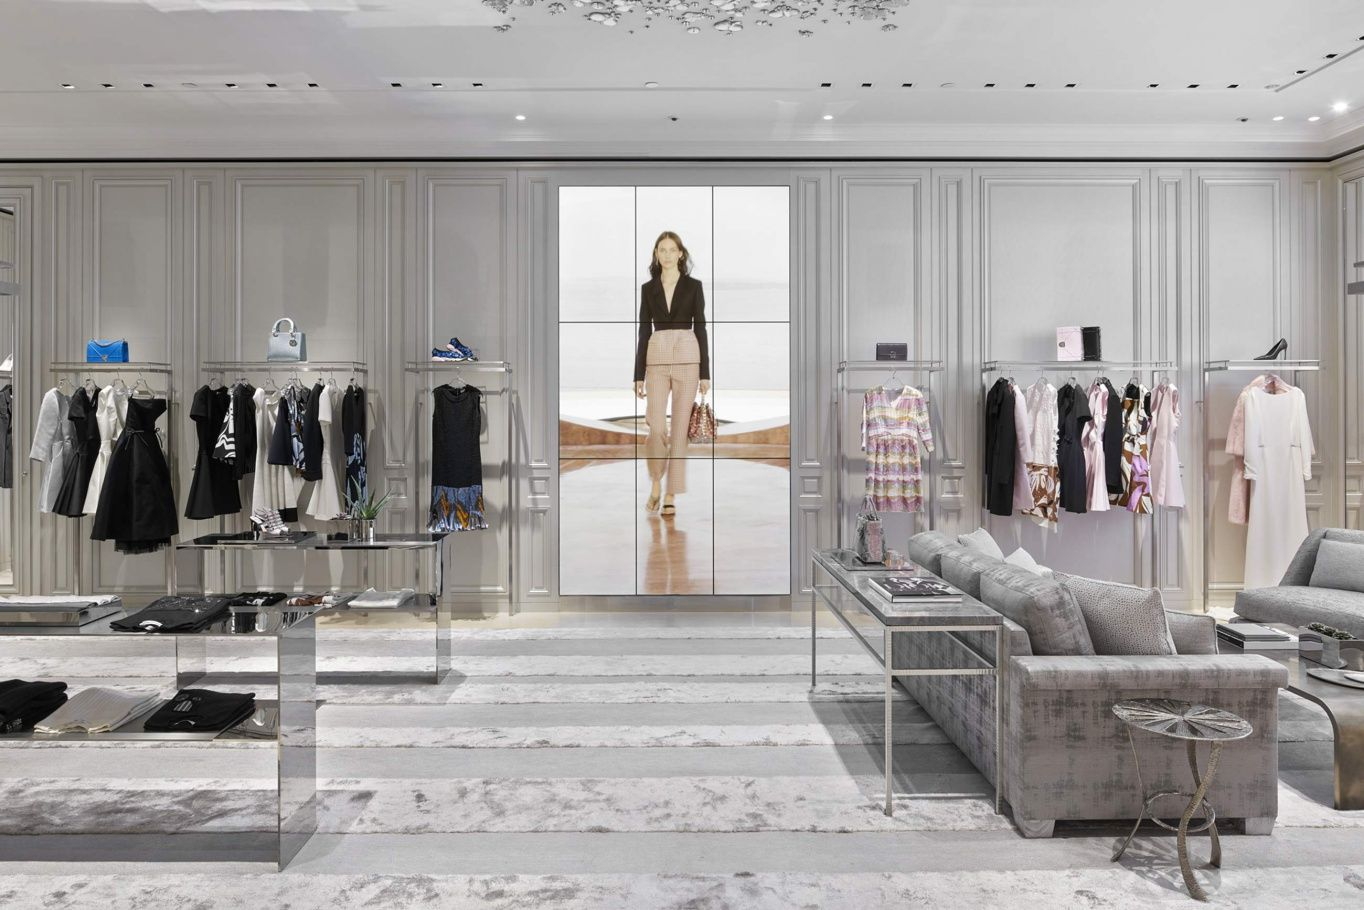 the dior boutique in singapore dior pinterest dior boutique boutique interior and bridal. Black Bedroom Furniture Sets. Home Design Ideas